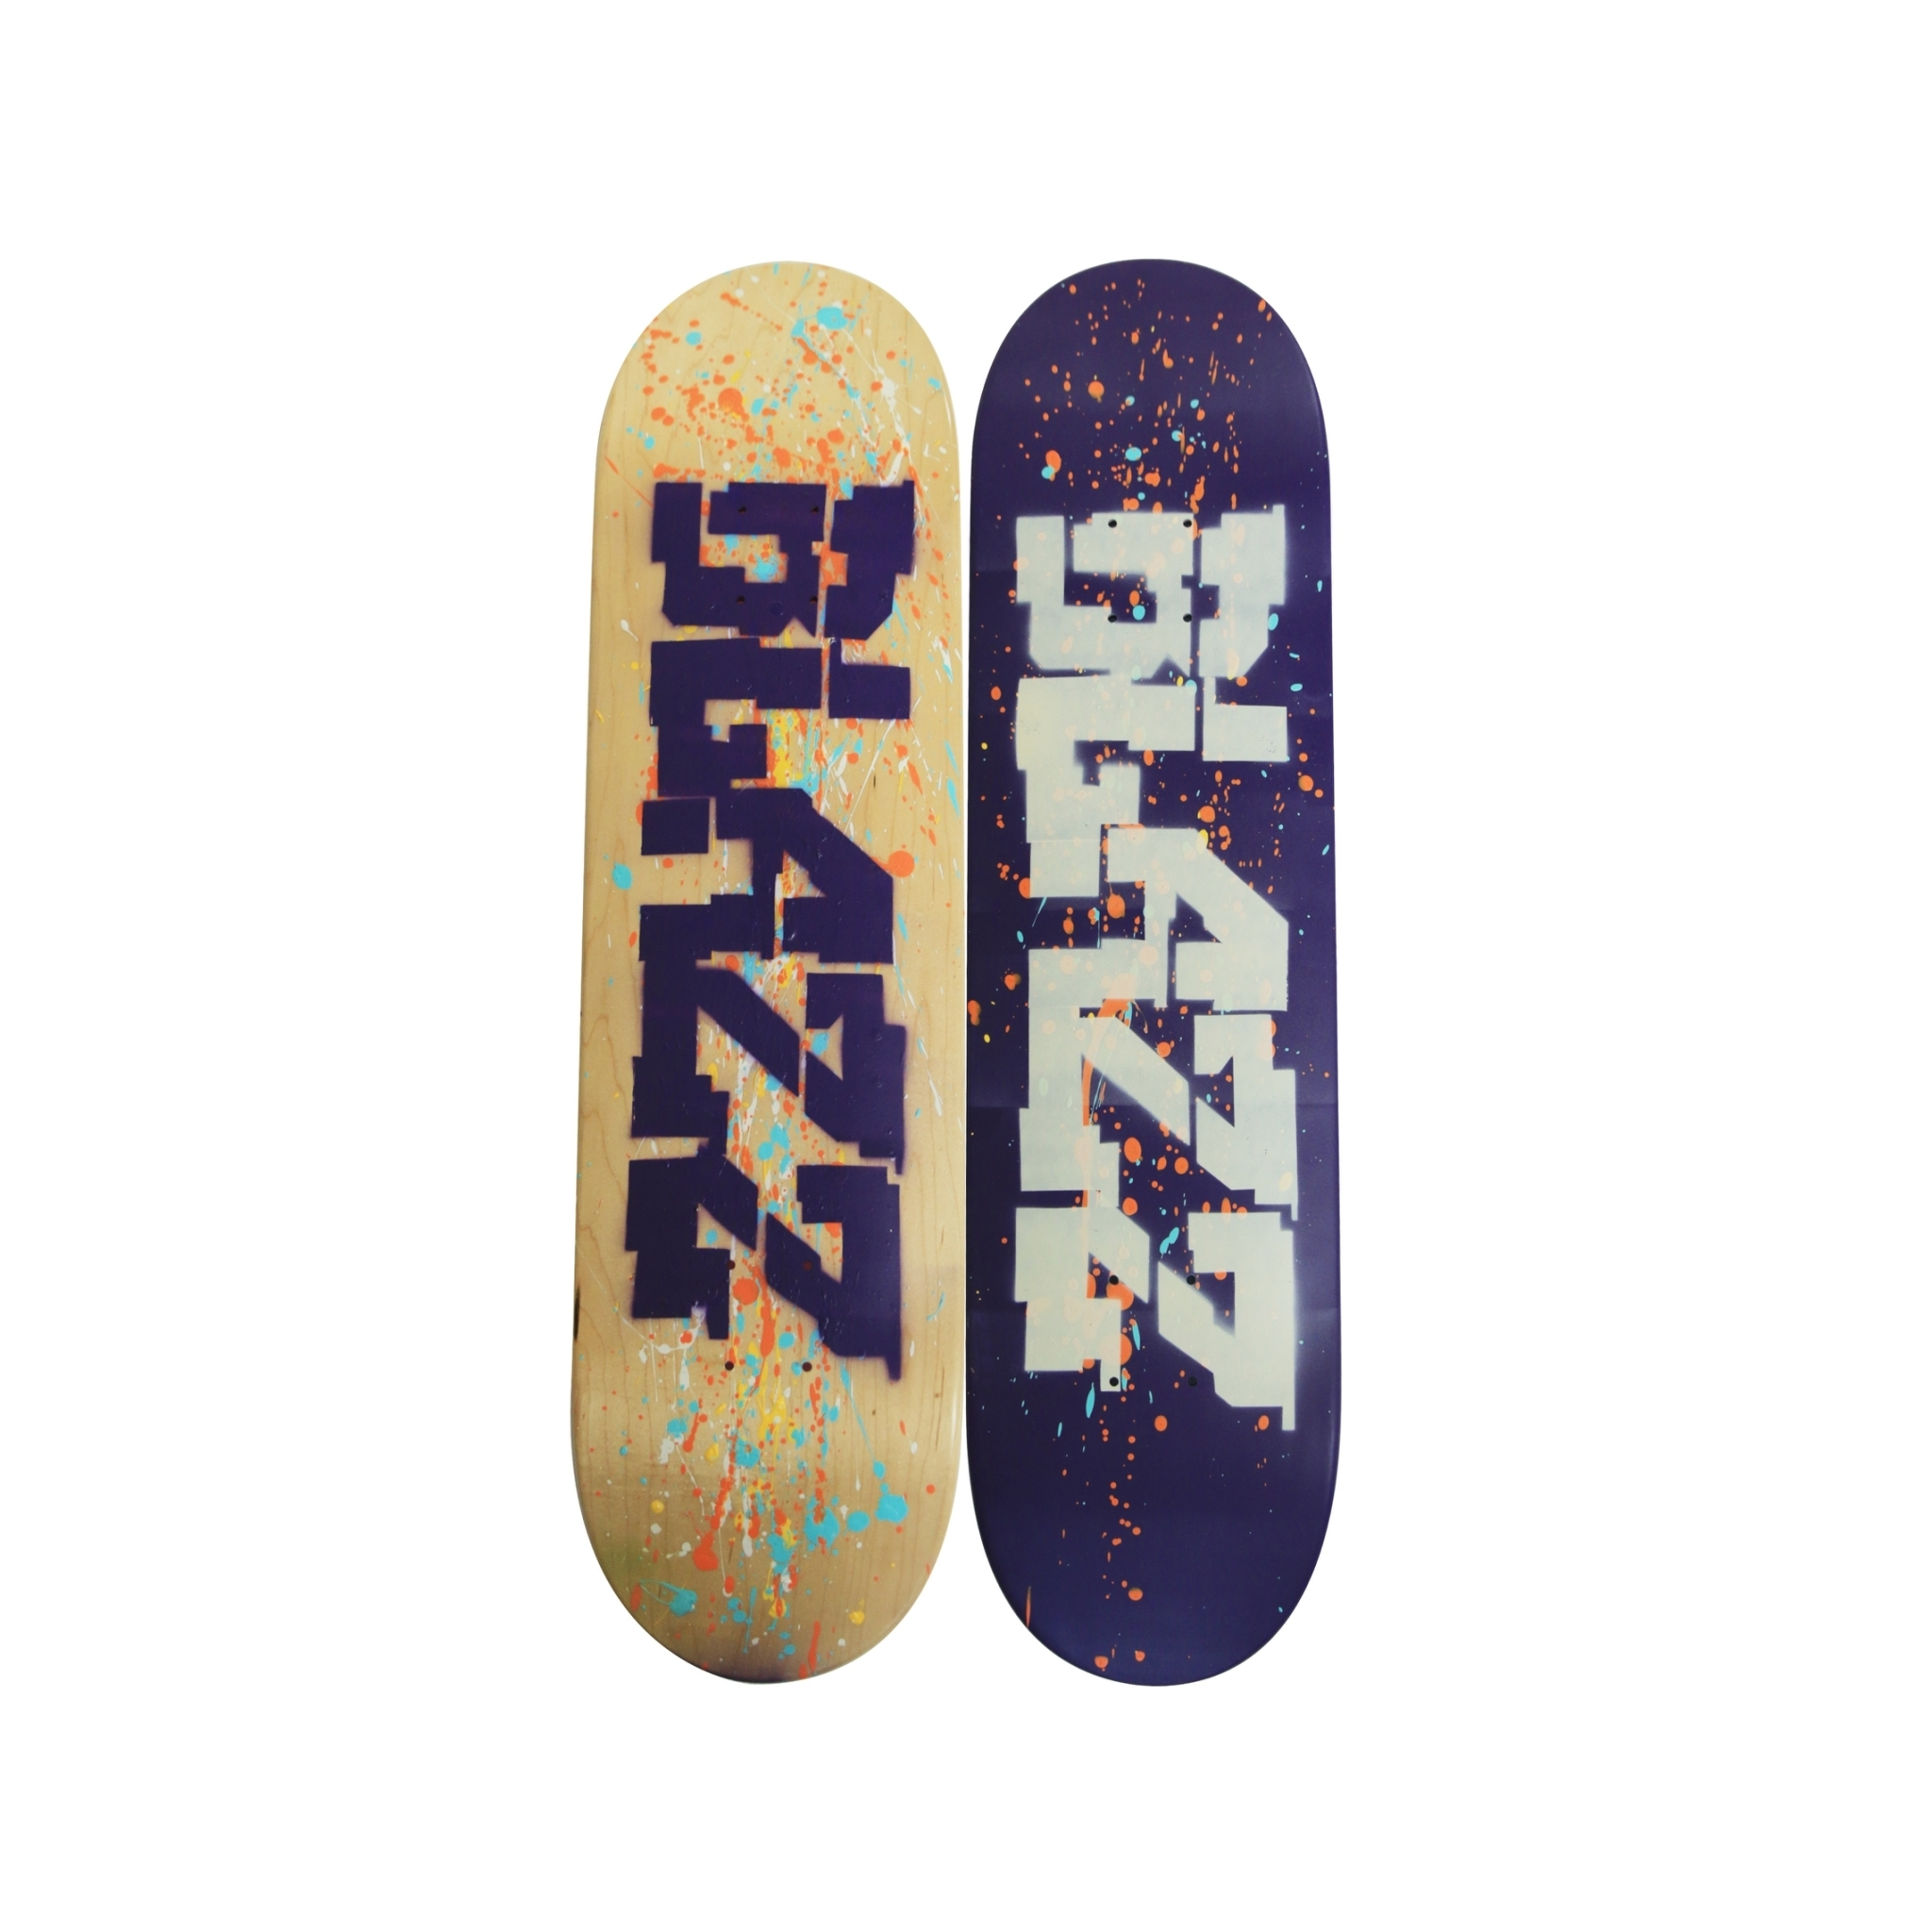 ZZSB ARTSESSION05 DECK01 (7.75) [PURPLE/NATURAL]